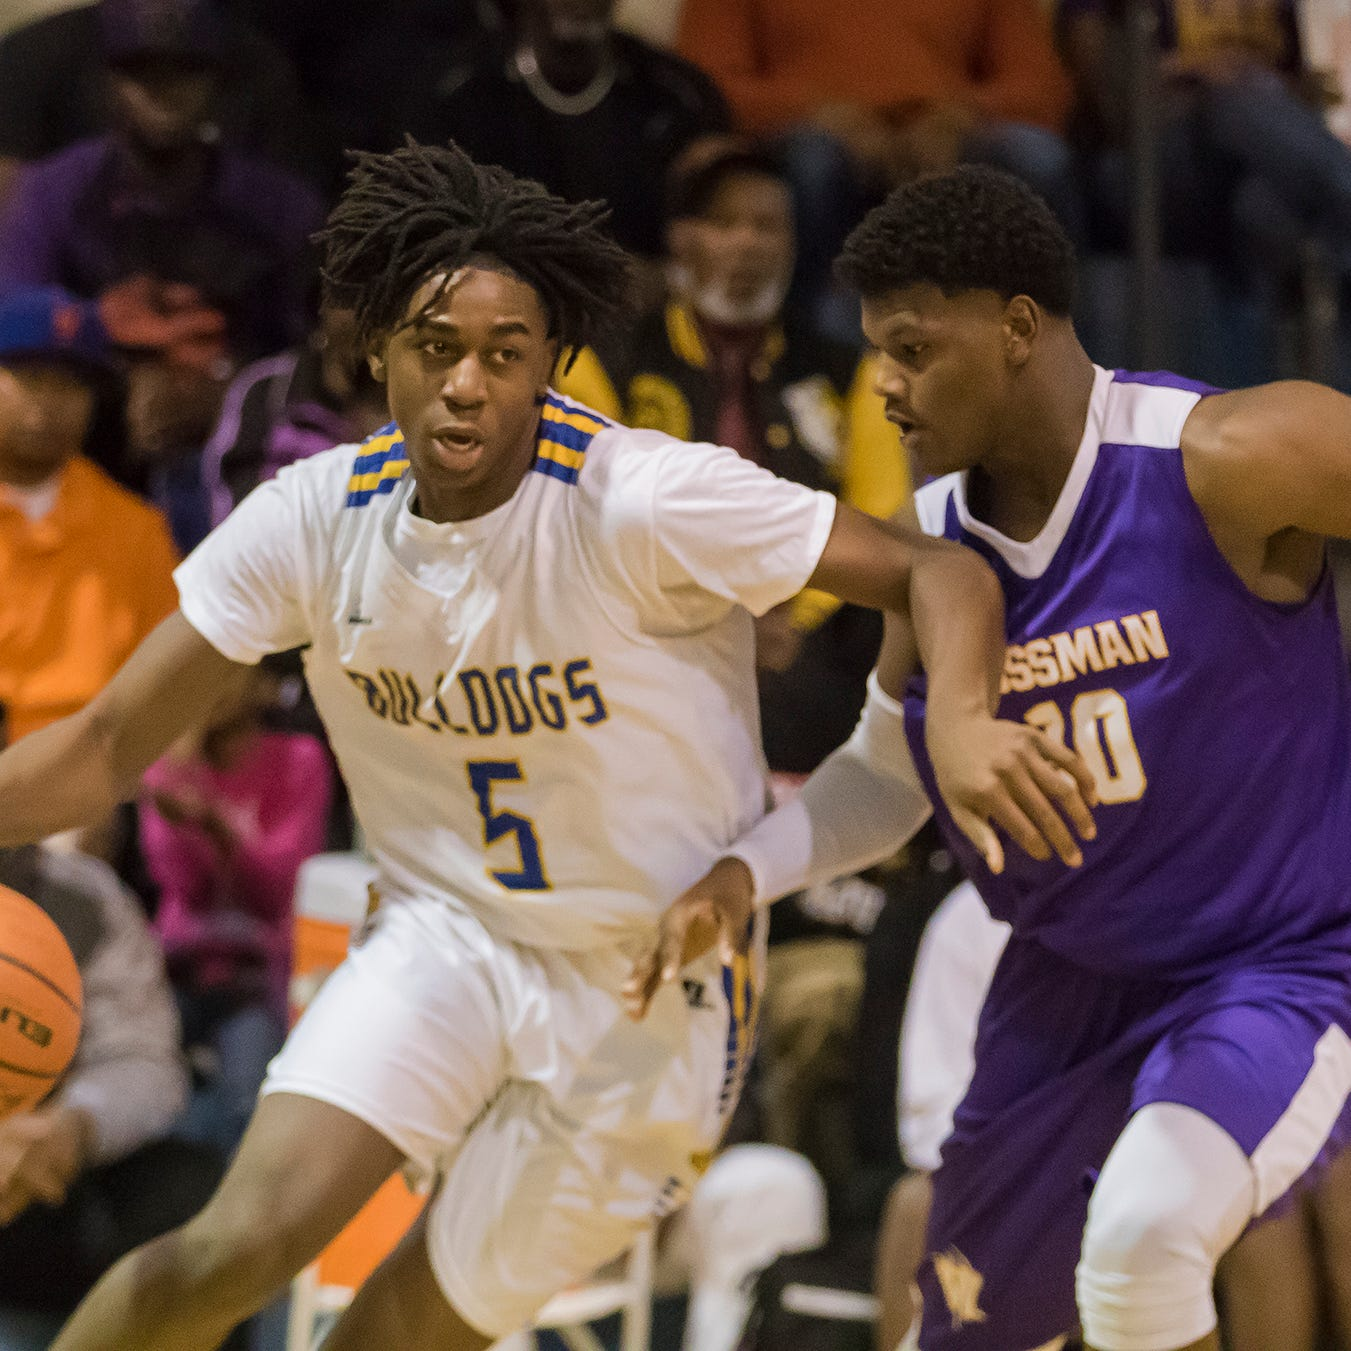 Carroll's Randy Jones (5) attempts to drive the ball against Wossman's Nick Traylor (10) during the game at Carroll High School in Monroe, La. on Jan 15.